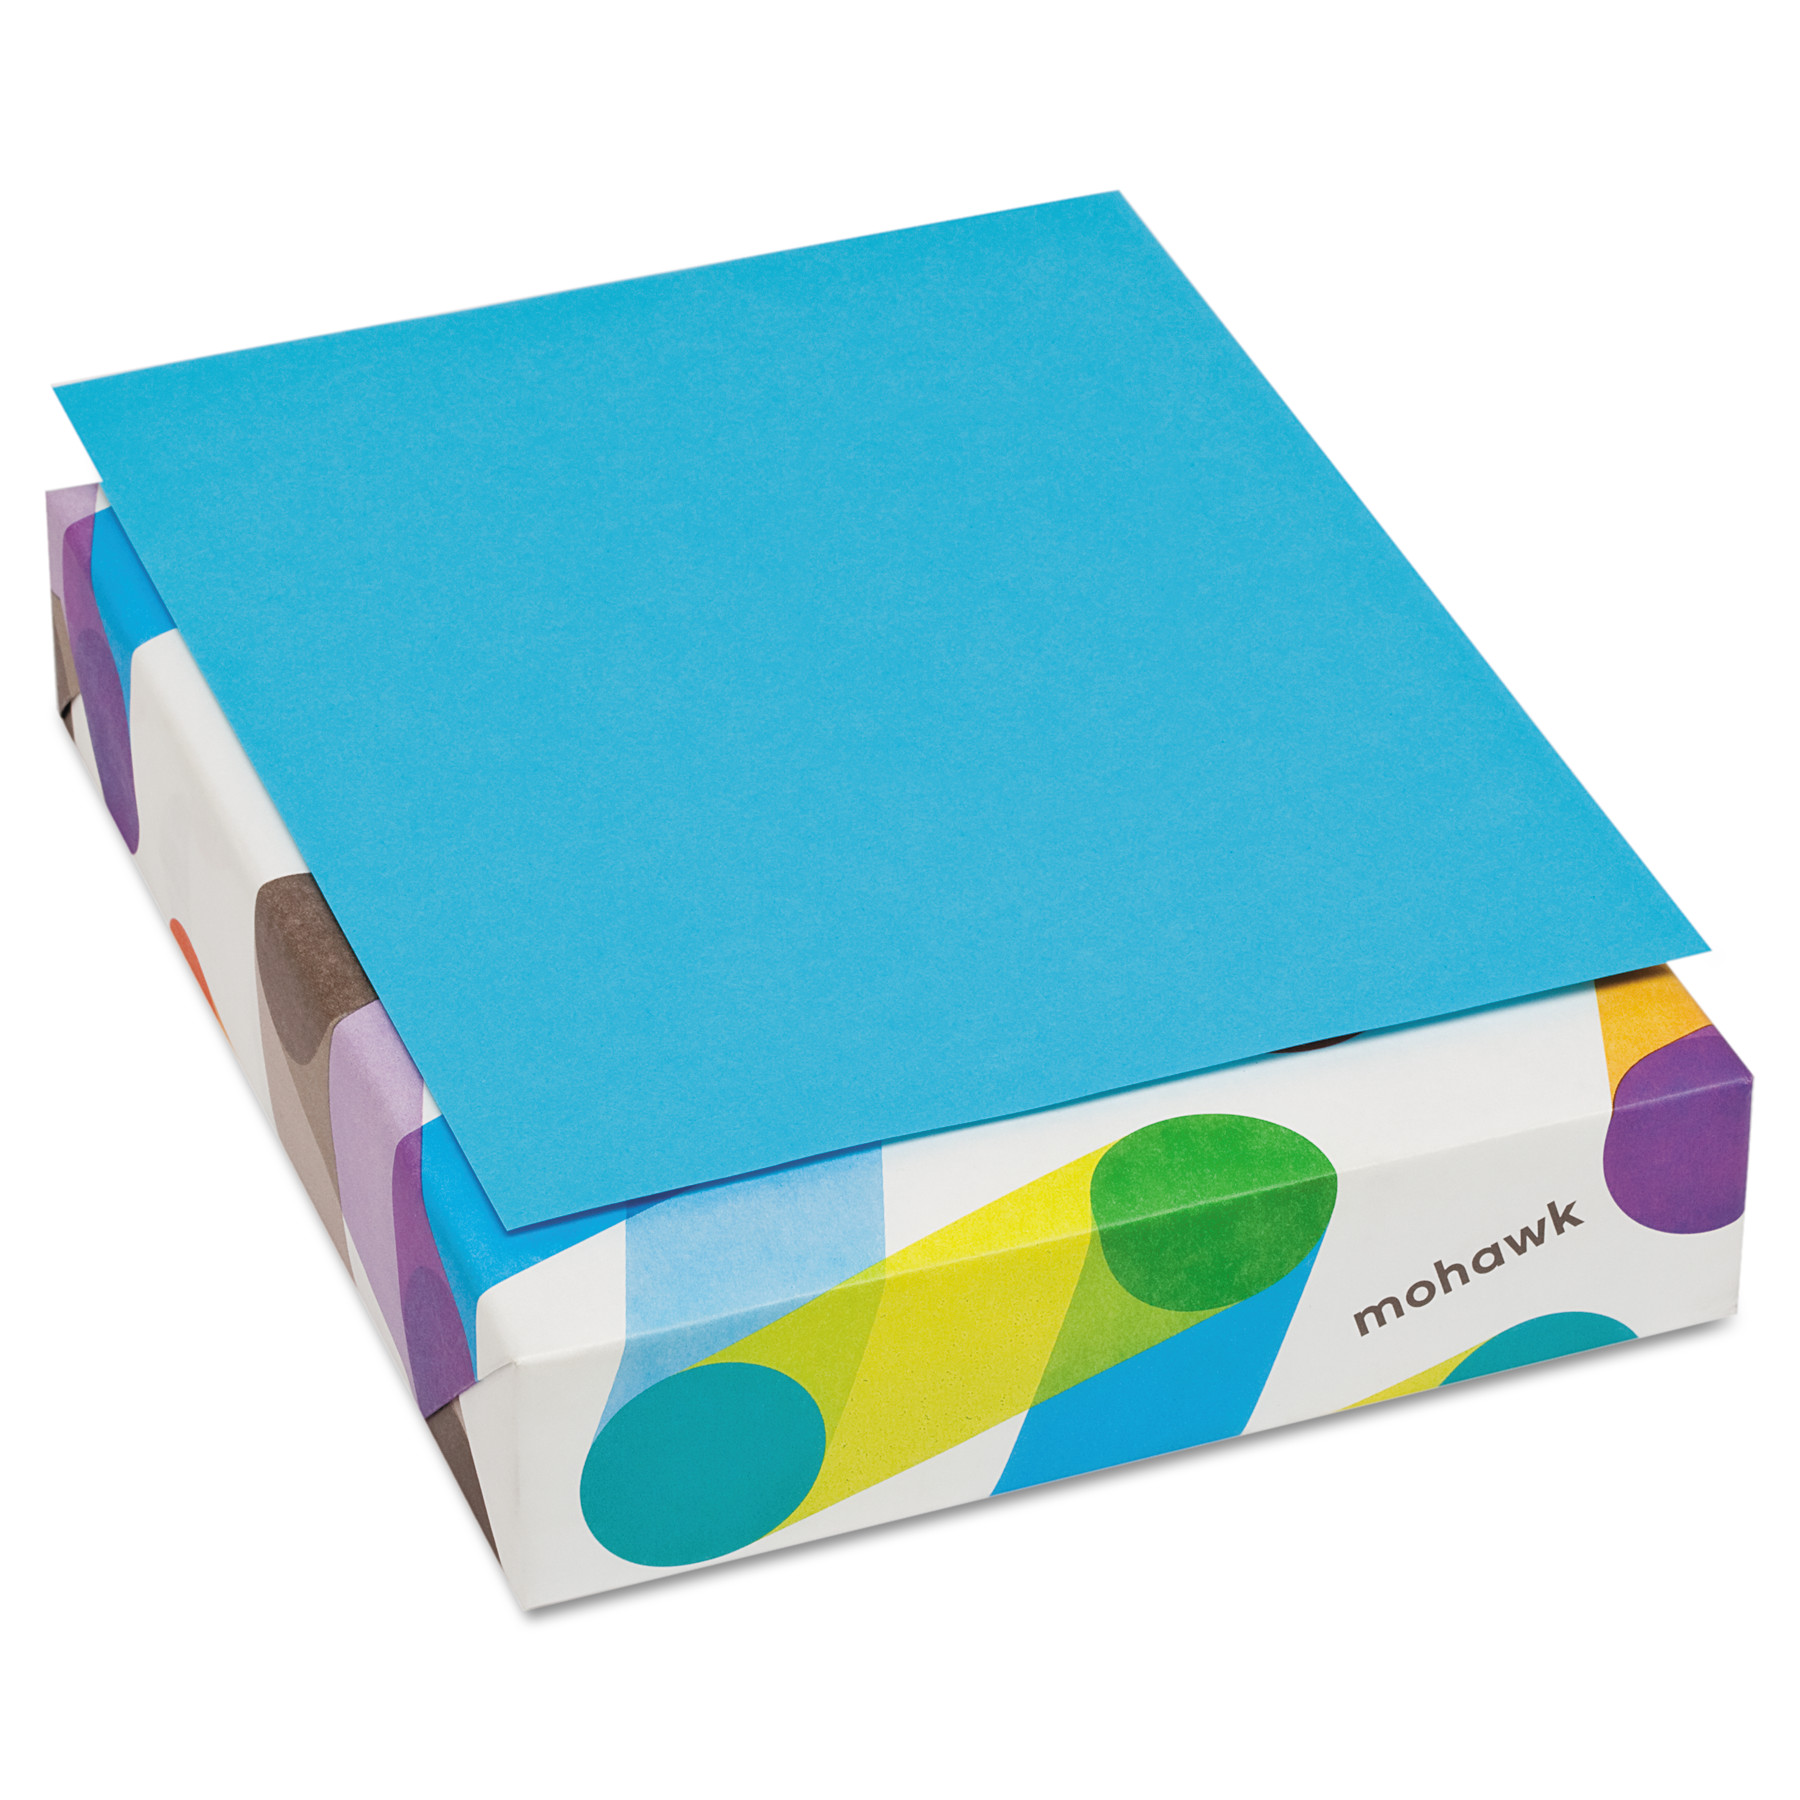 Mohawk BriteHue Multipurpose Colored Paper, 20lb, 8 1/2 x 11, Blue, 500 Sheets